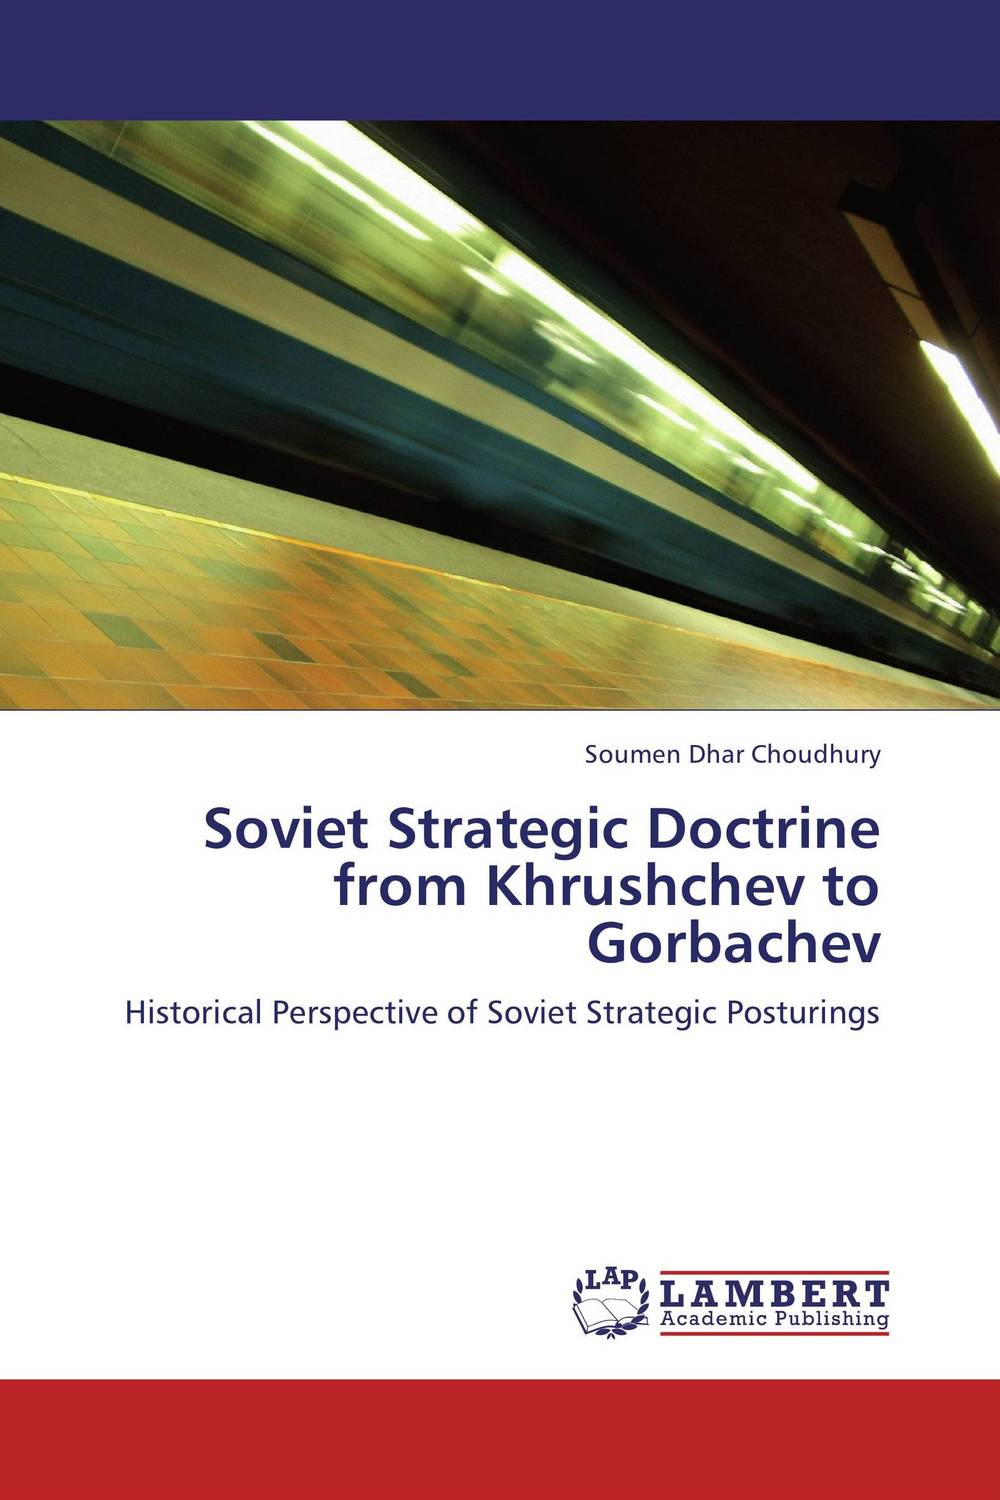 Soviet Strategic Doctrine from Khrushchev to Gorbachev bremzen a mastering the art of soviet cooking